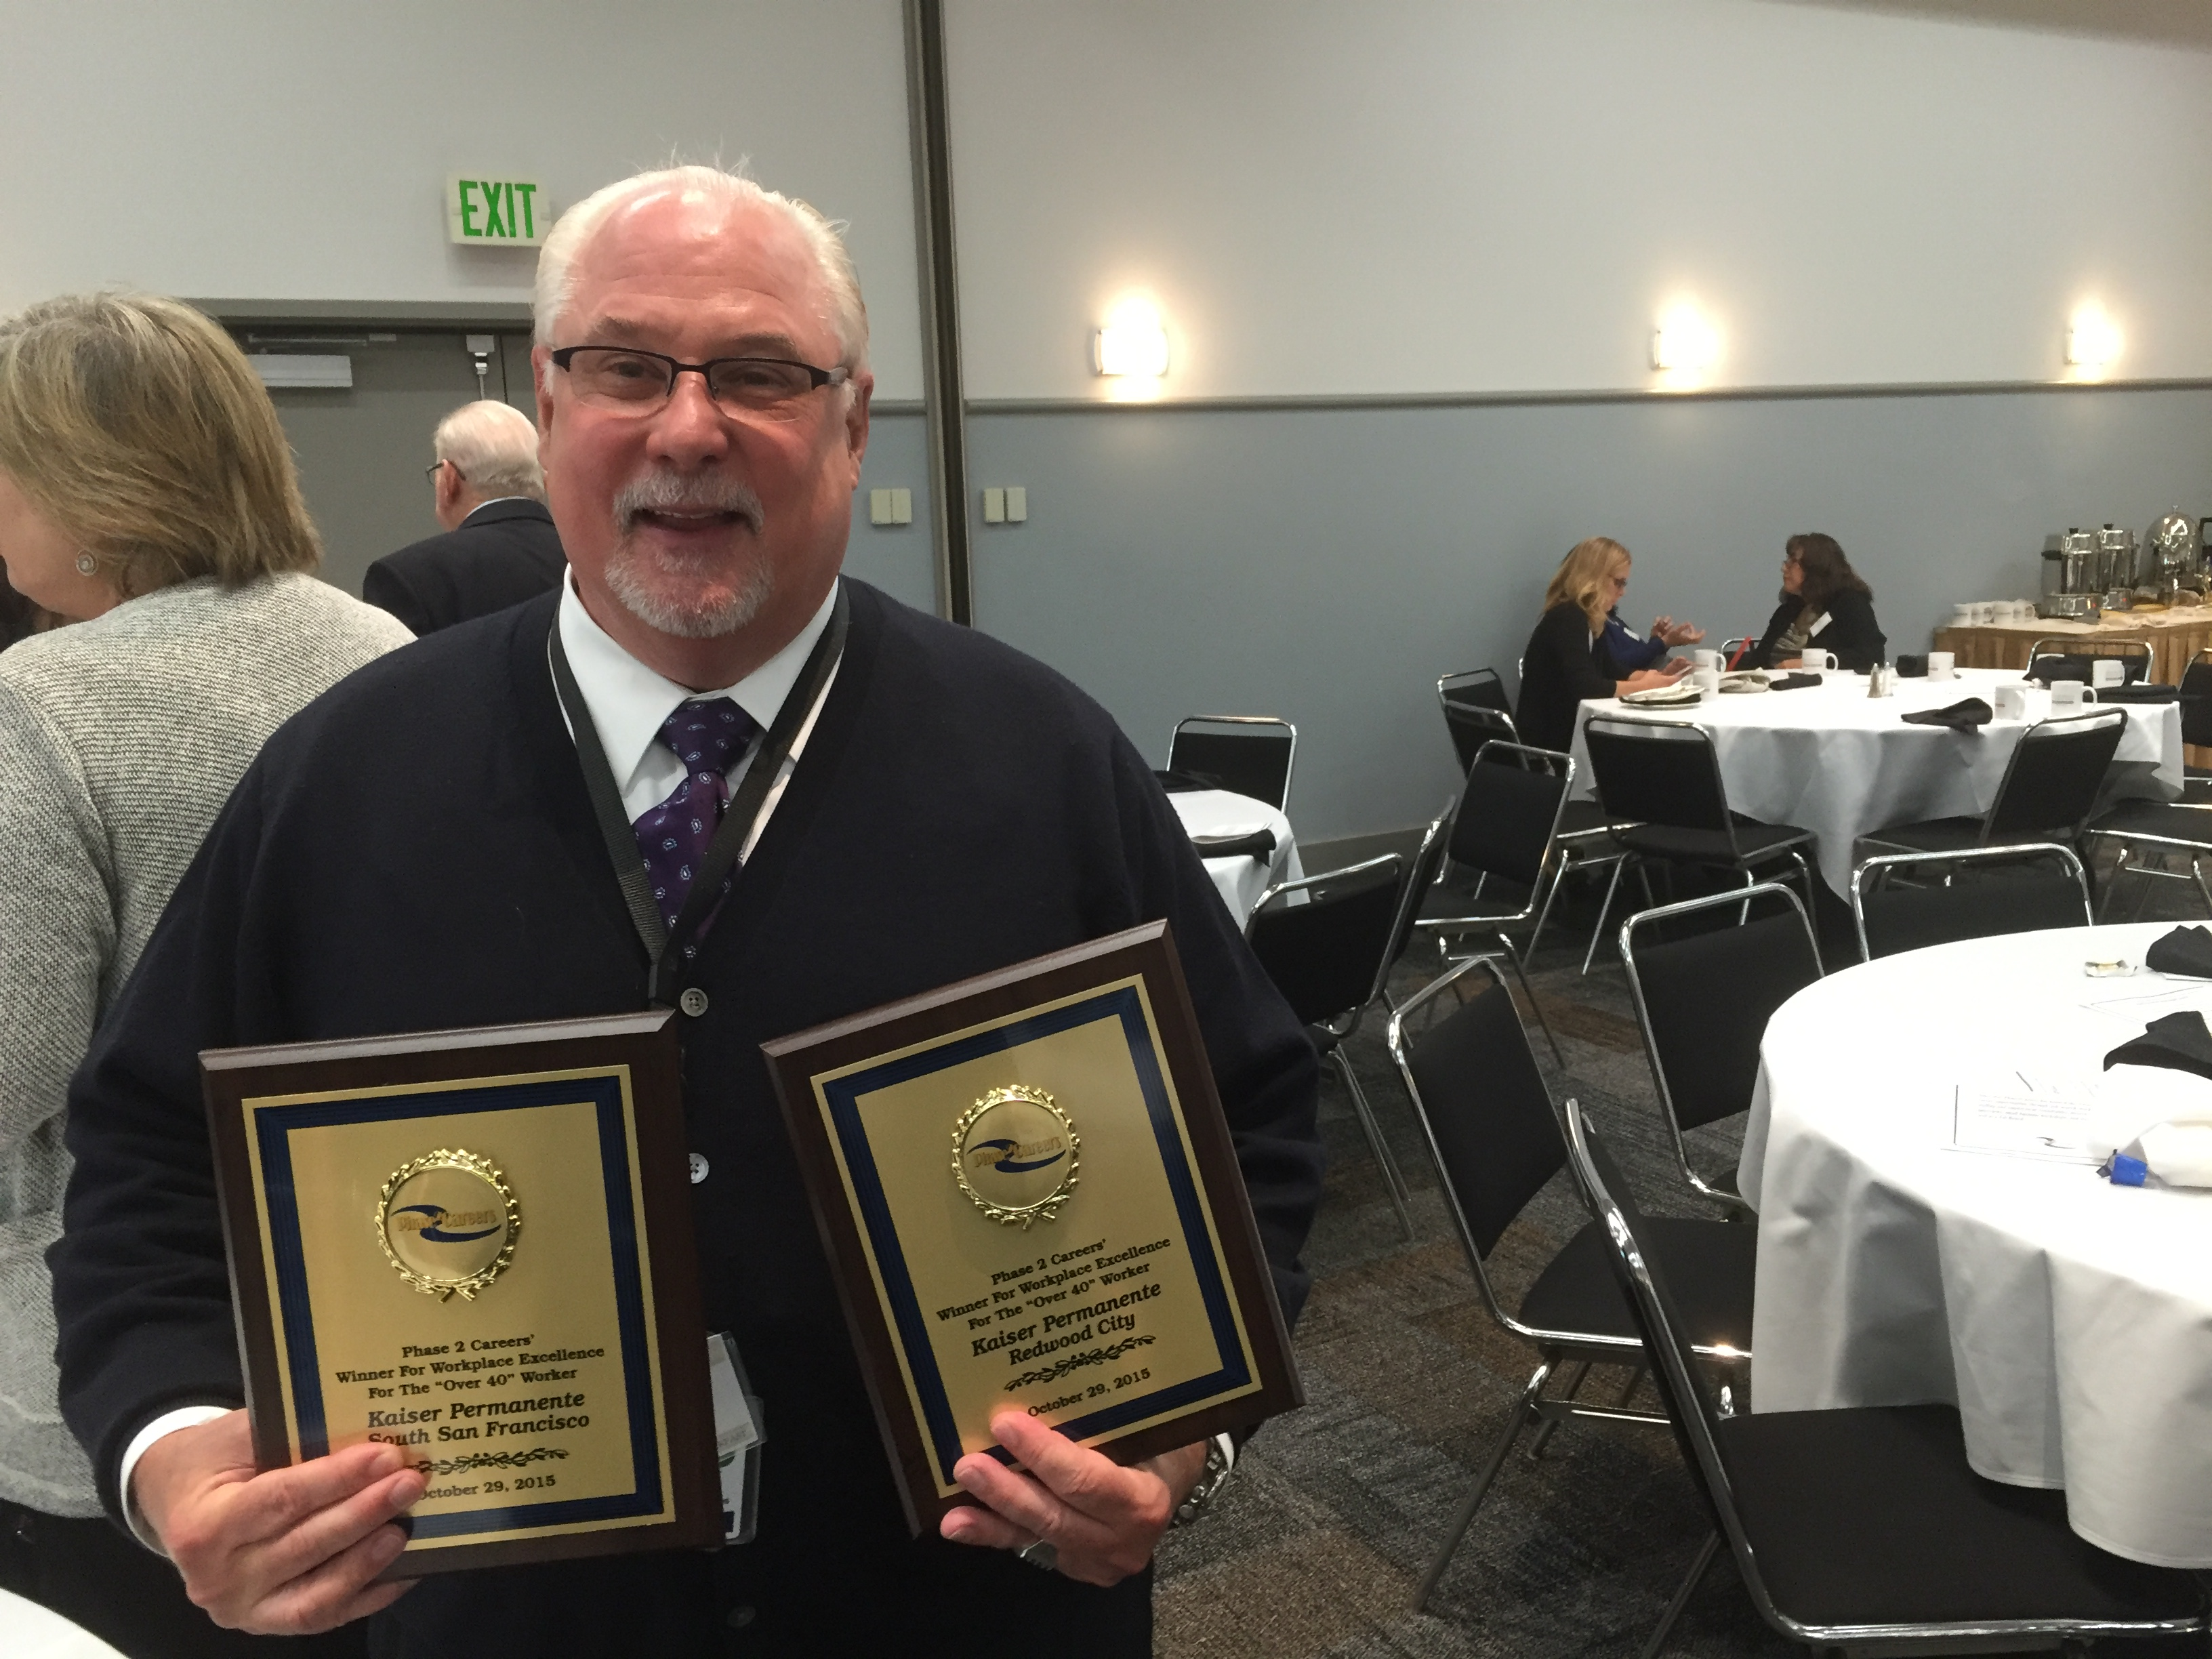 Kaiser Permanente Honored For Recruiting Workers Over Age